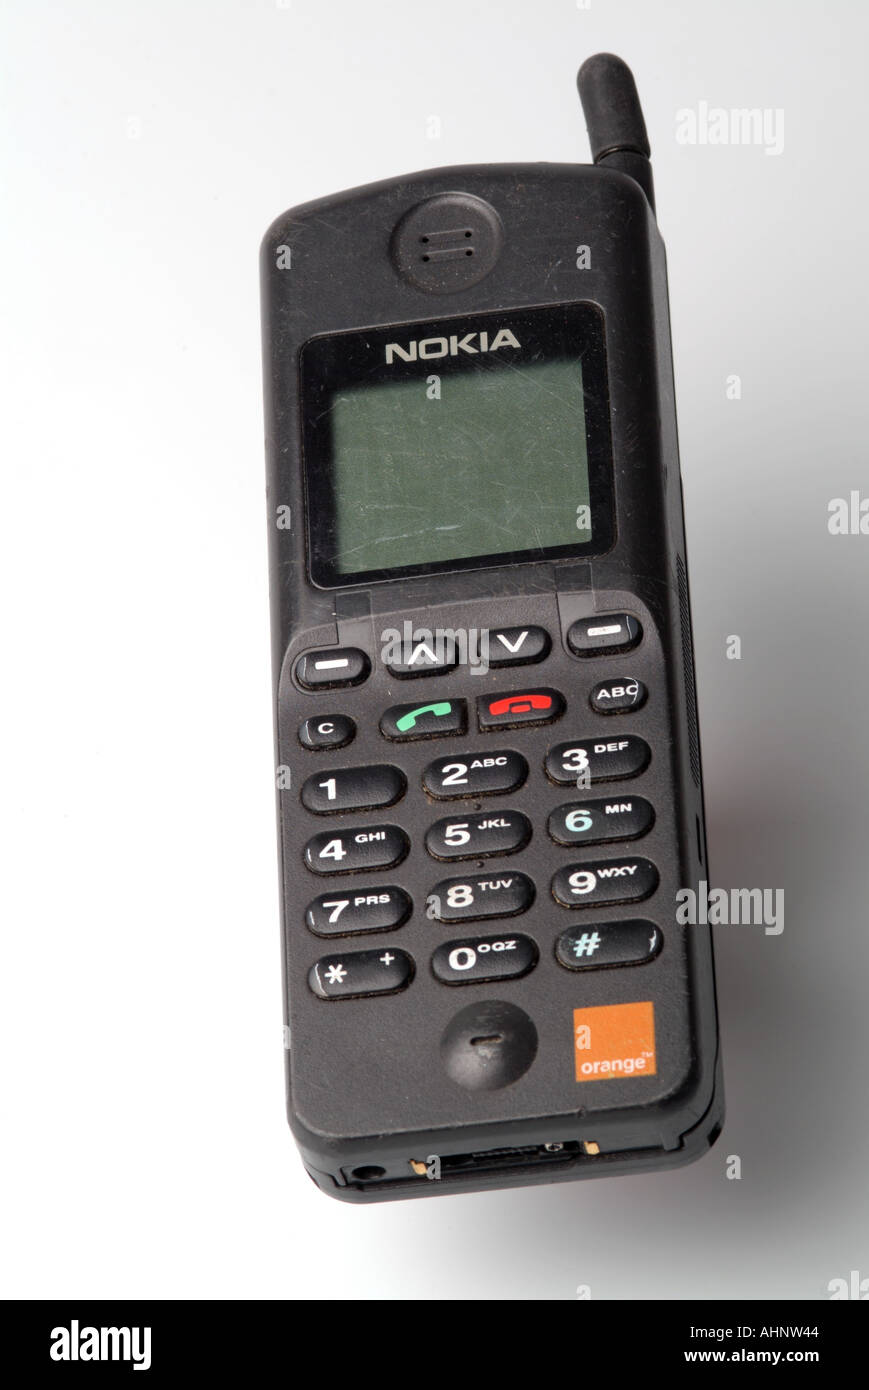 Old Mobile Phone Stock Photos Images Page Circuit Board From A Nokia 3310 Photo Picture And Cell On The Orange Network Image